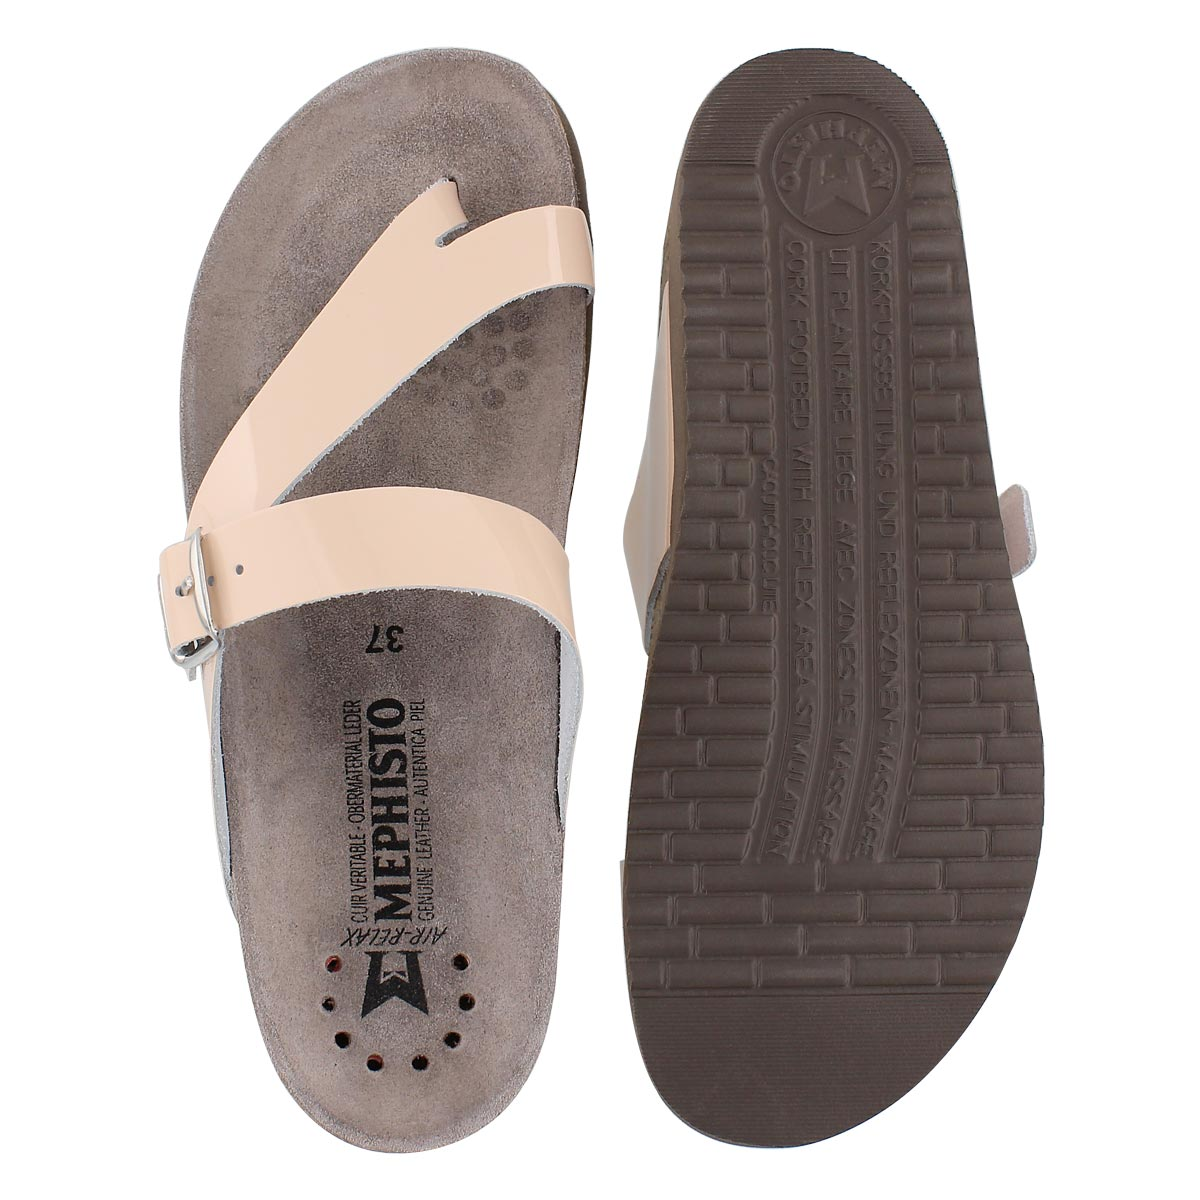 Lds Helen nude patent cork footbed thong